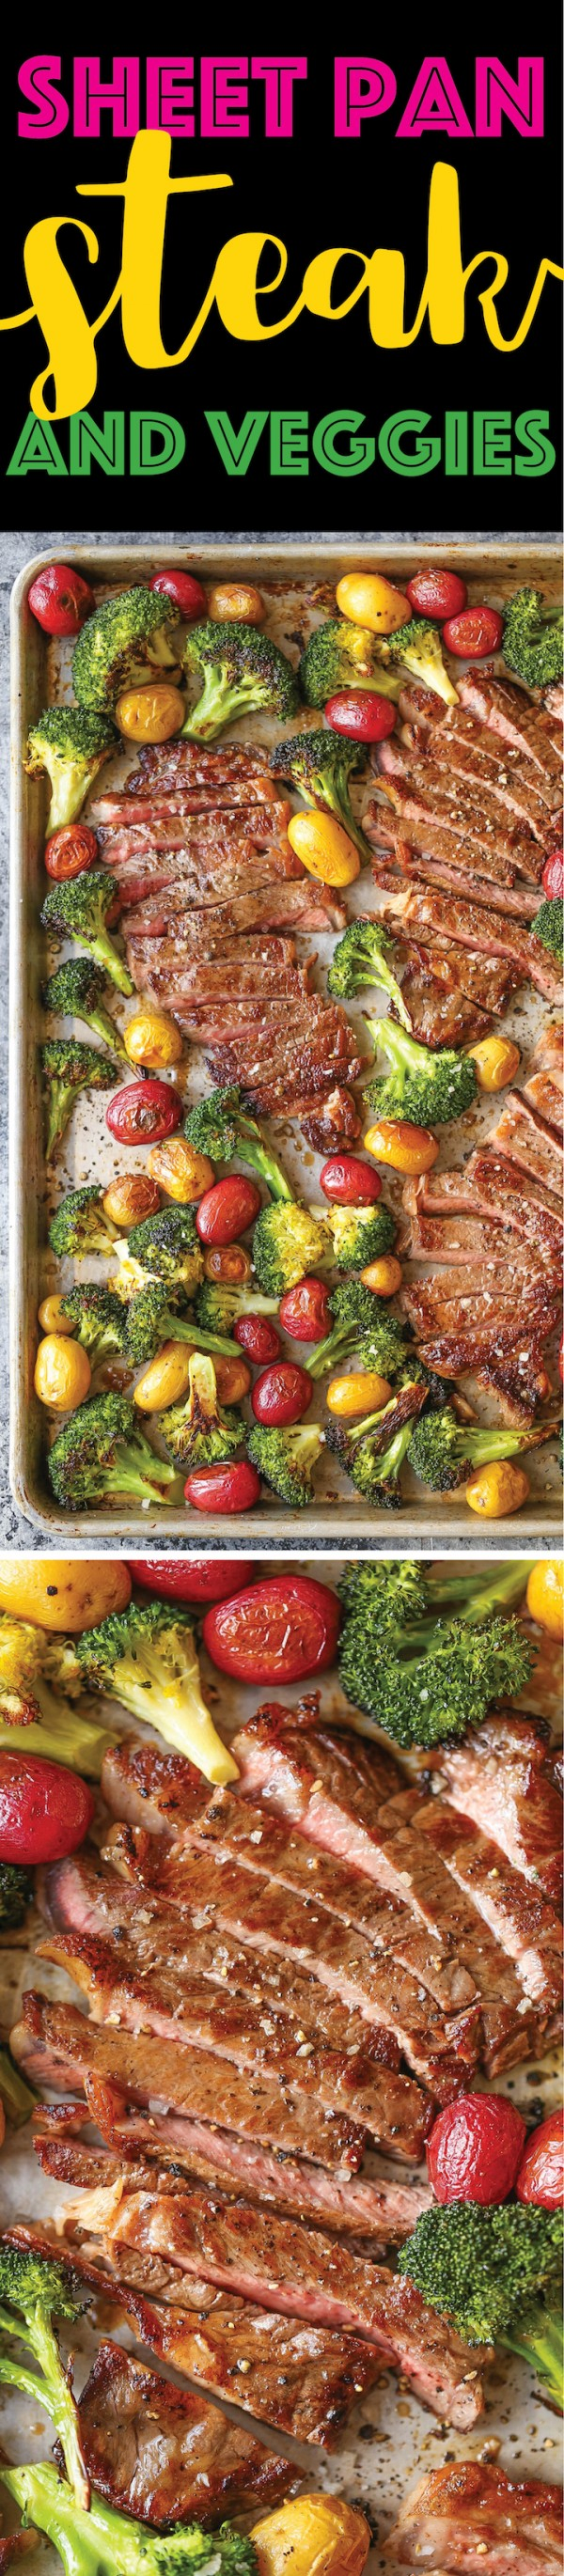 Get the recipe Sheet Pan Steak and Veggies @recipes_to_go